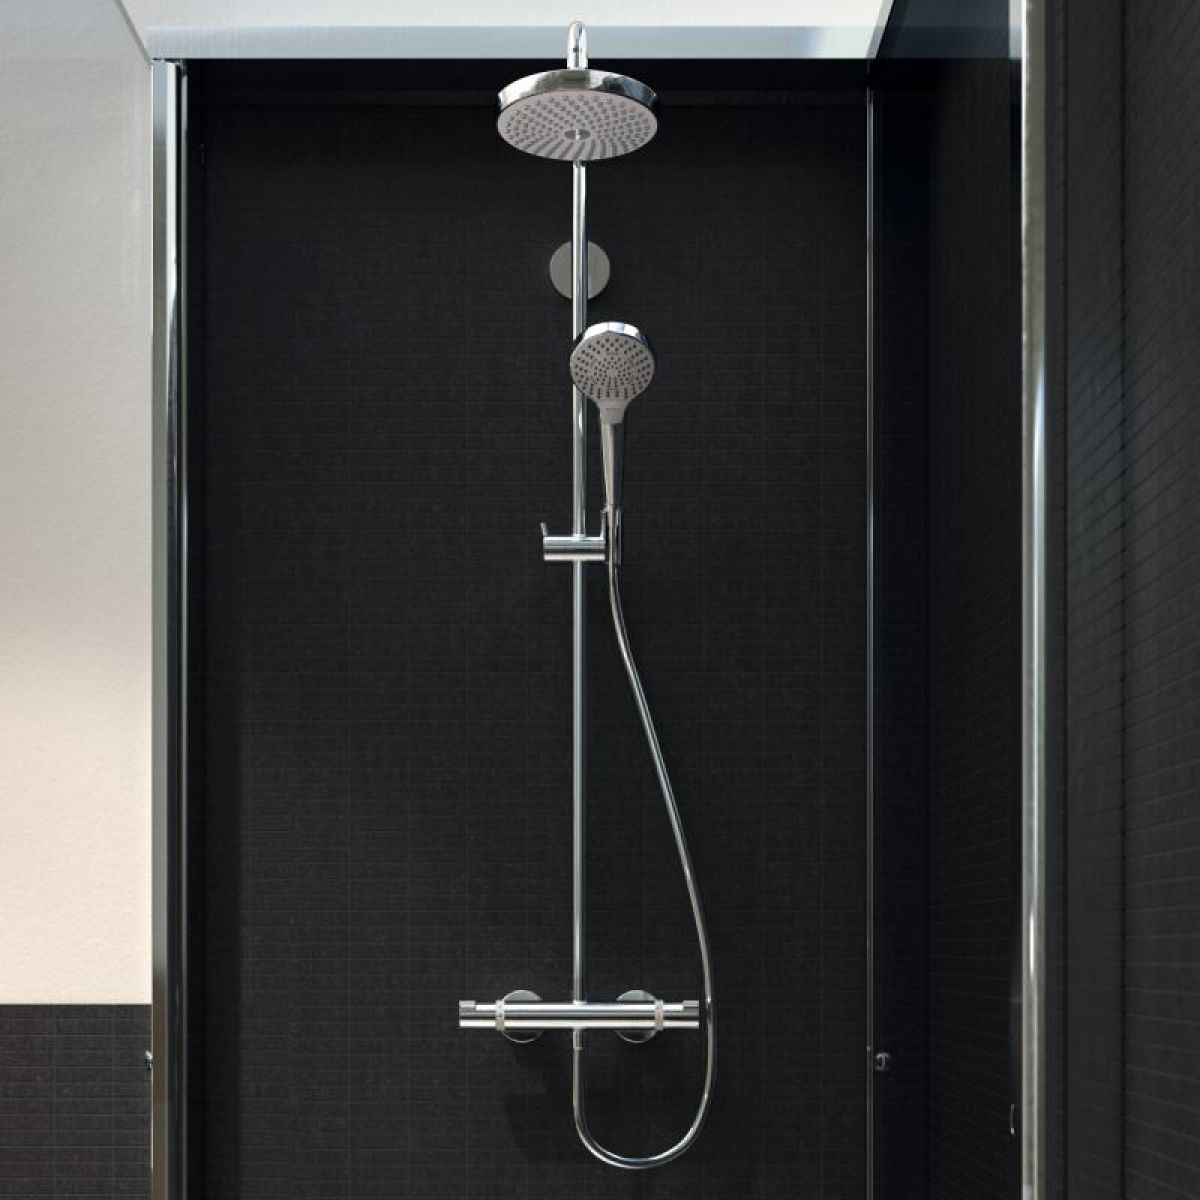 hansgrohe raindance select s 240 1jet showerpipe uk bathrooms. Black Bedroom Furniture Sets. Home Design Ideas